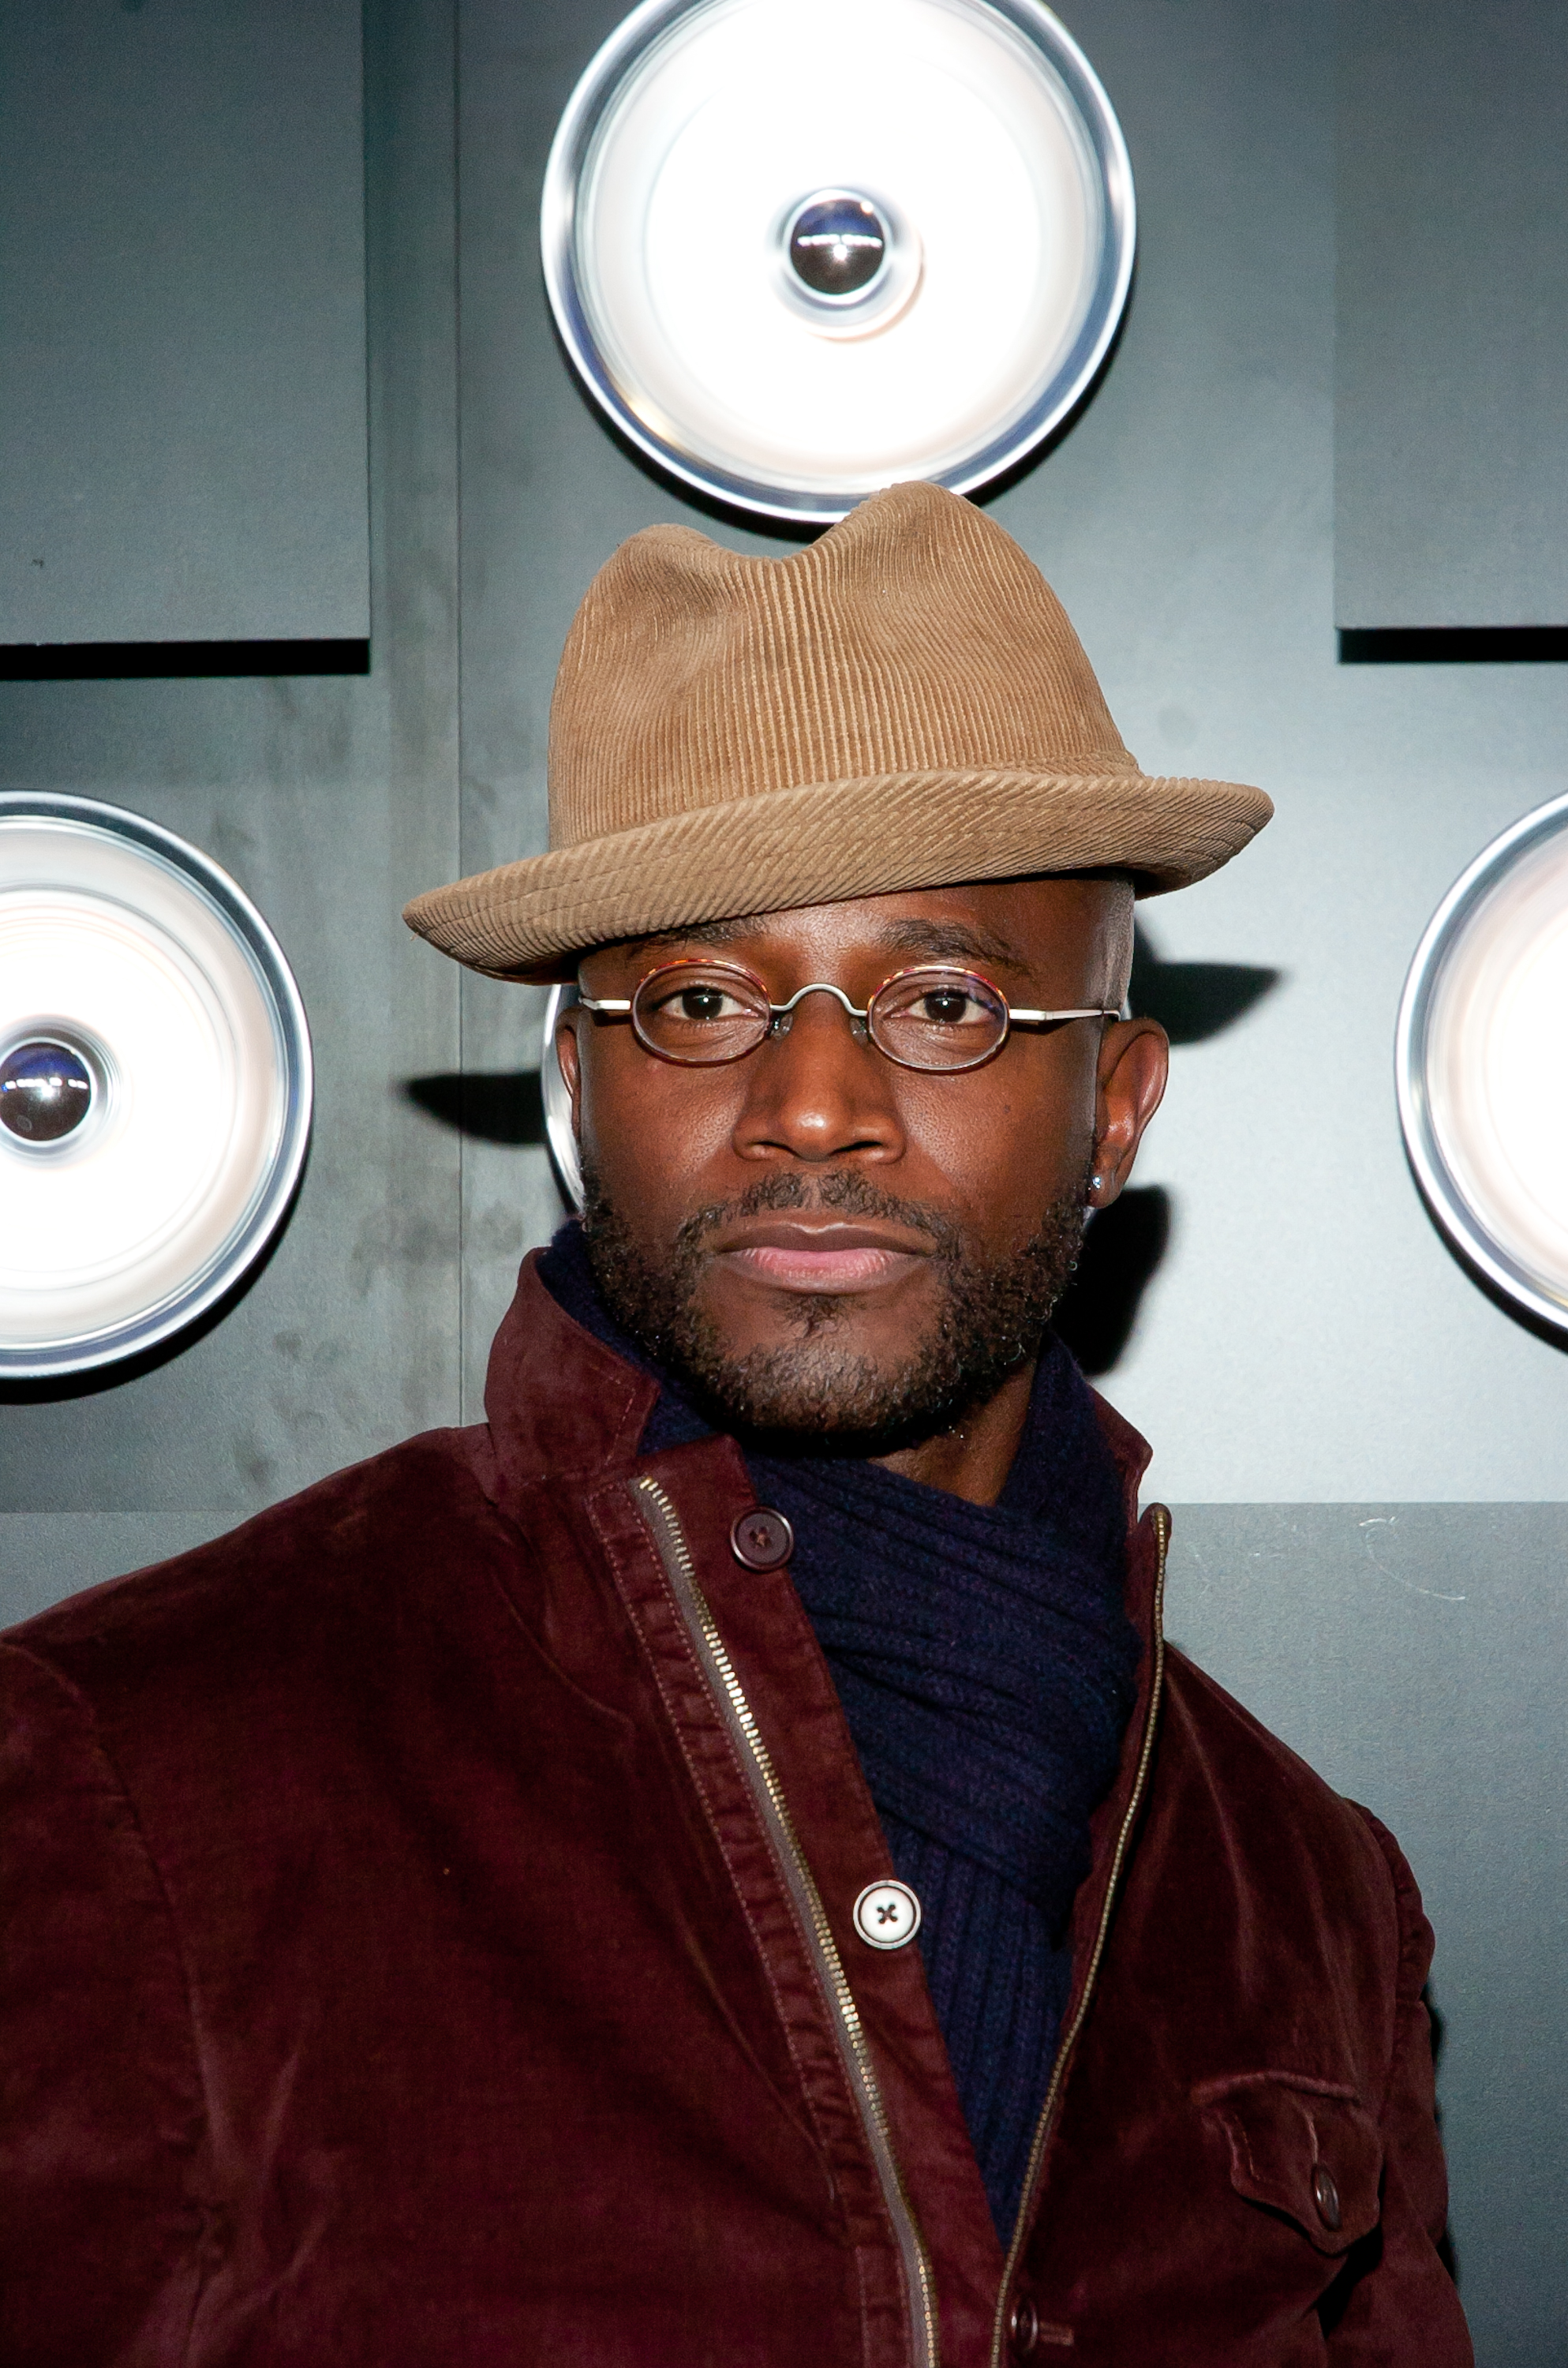 Actor Taye Diggs attends the 60th Anniversary Playboy Party at Bud Light Hotel on January 31, 2014 in New York City.